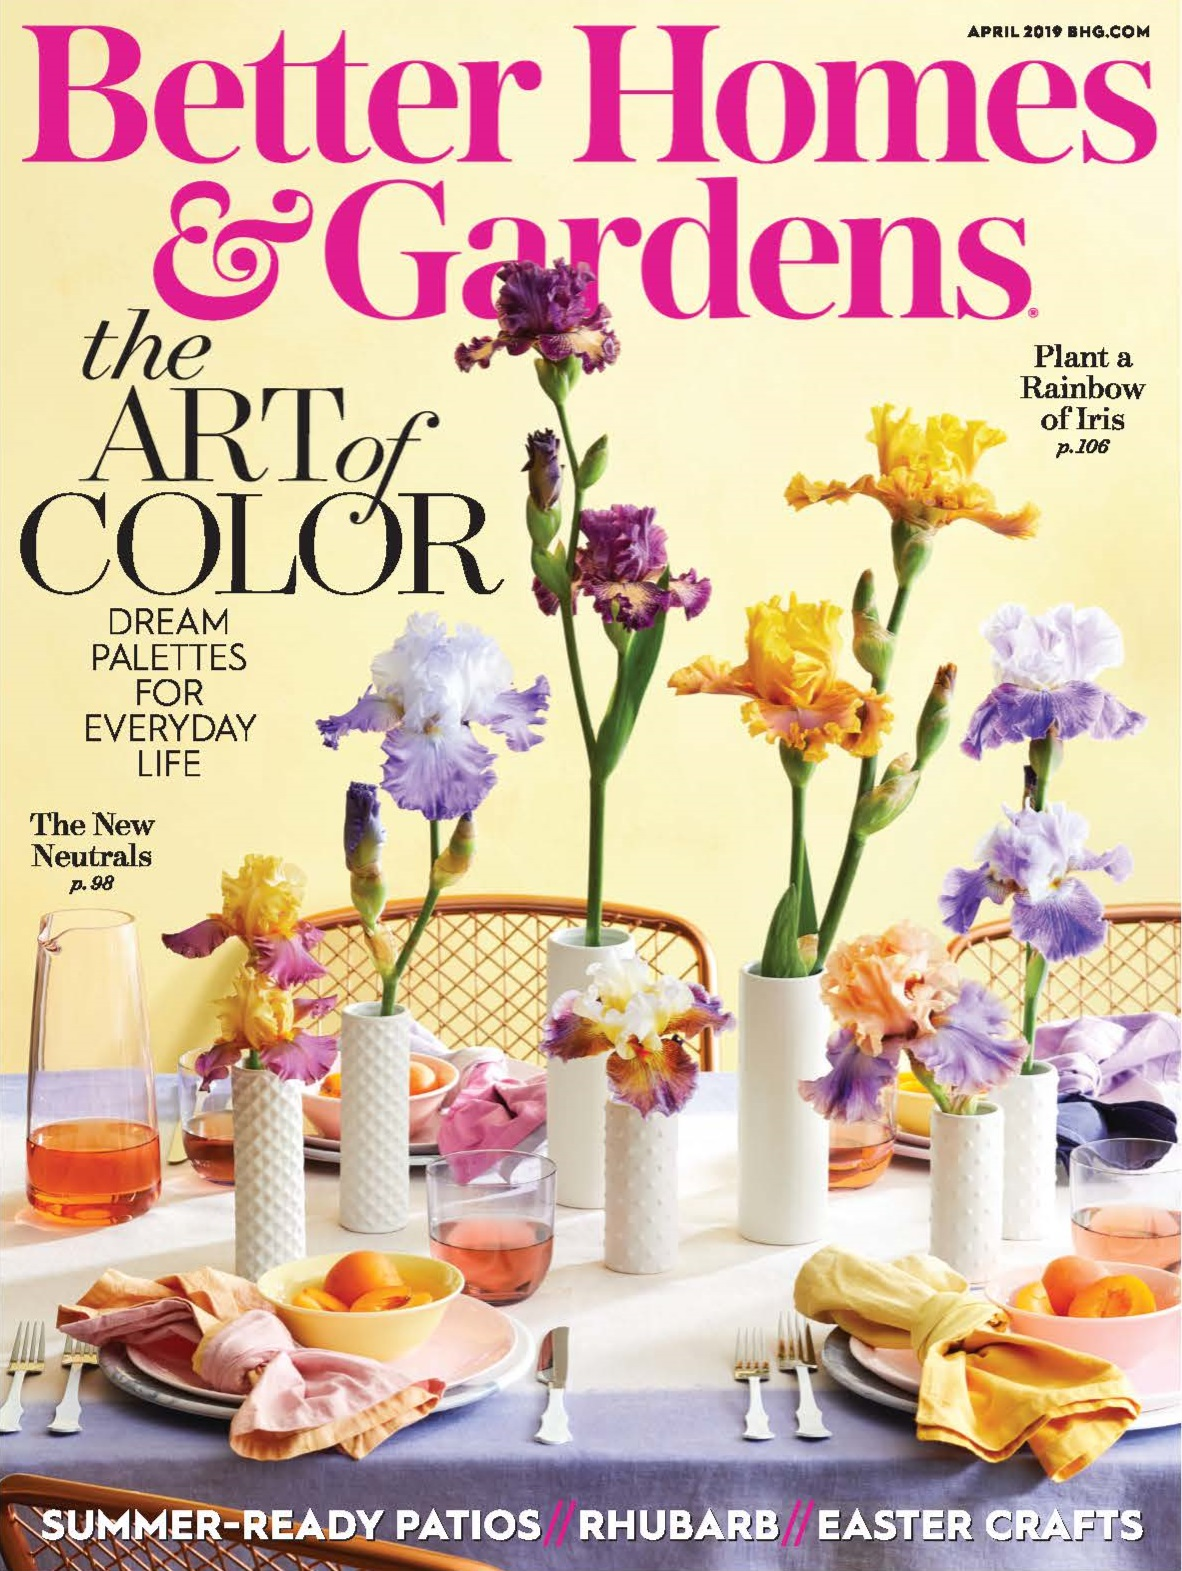 Better Homes & Gardens Cover April 2019.jpg